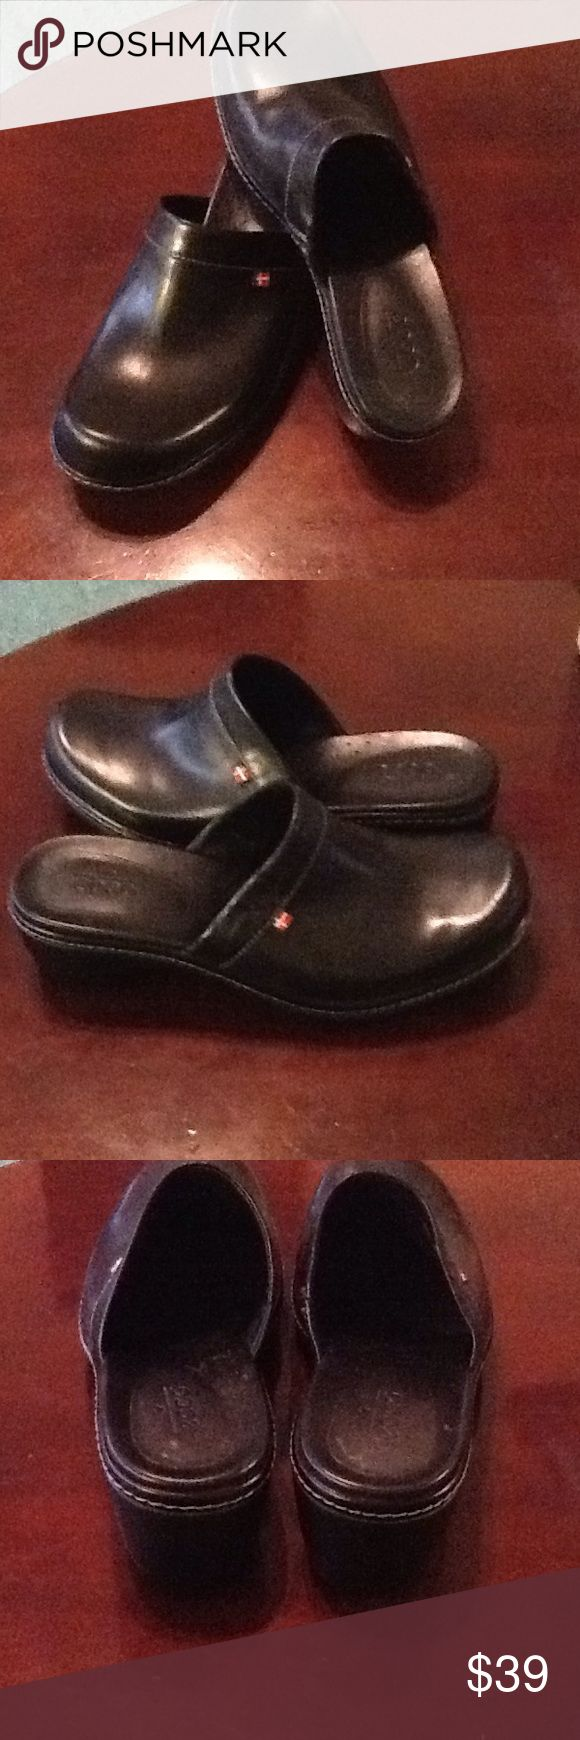 ECCO BLACK WOMEN MULES ECCO BLACK WOMEN MULES SIZE 8 PREOWNED GOOD CONDITION Ecco Shoes Mules & Clogs